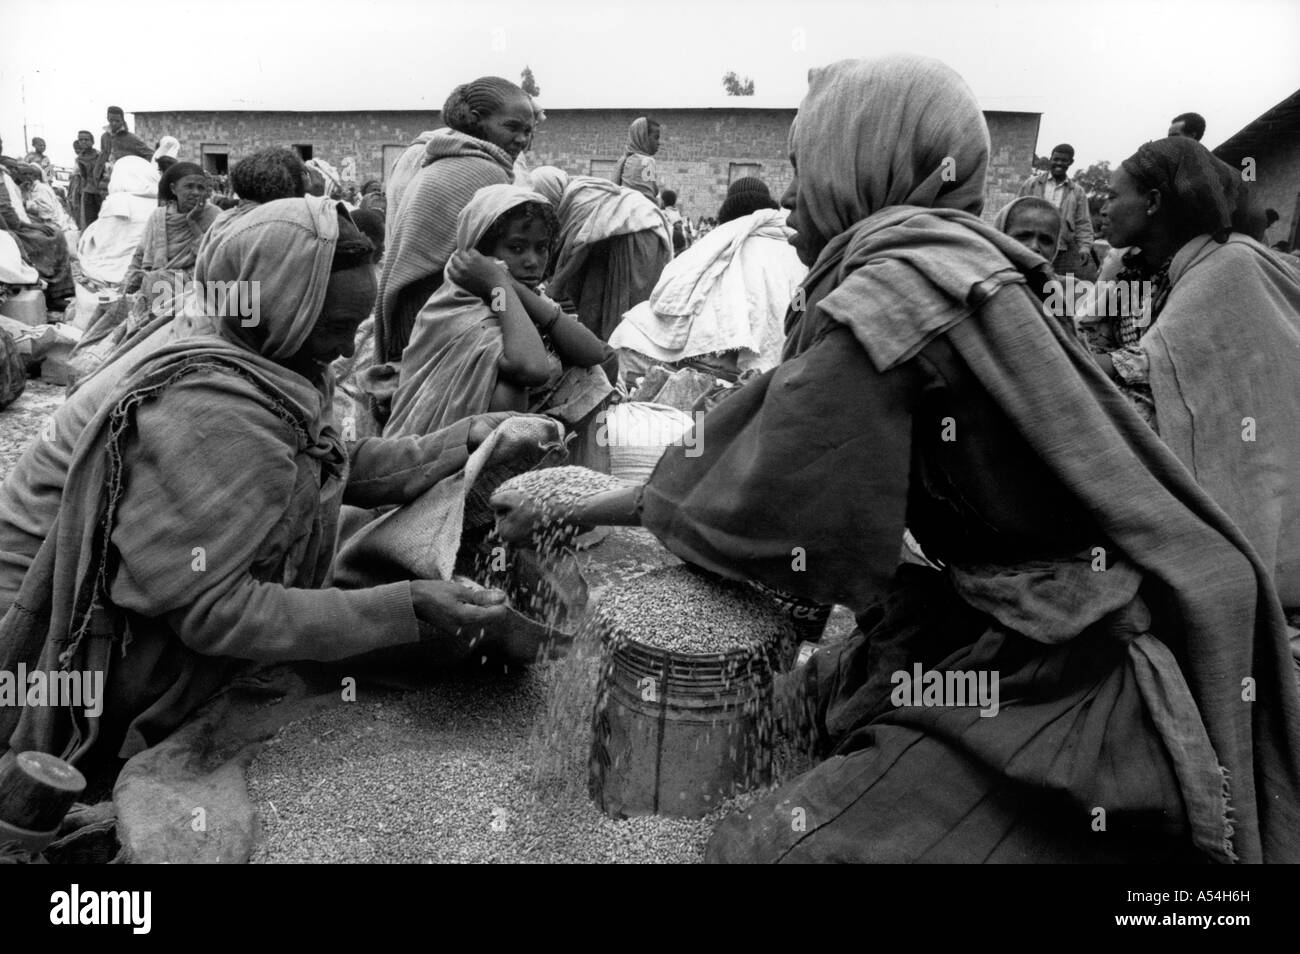 Painet hq1496 black and white food distribution by catholic relief services mekelle tigray ethiopia images bw country - Stock Image